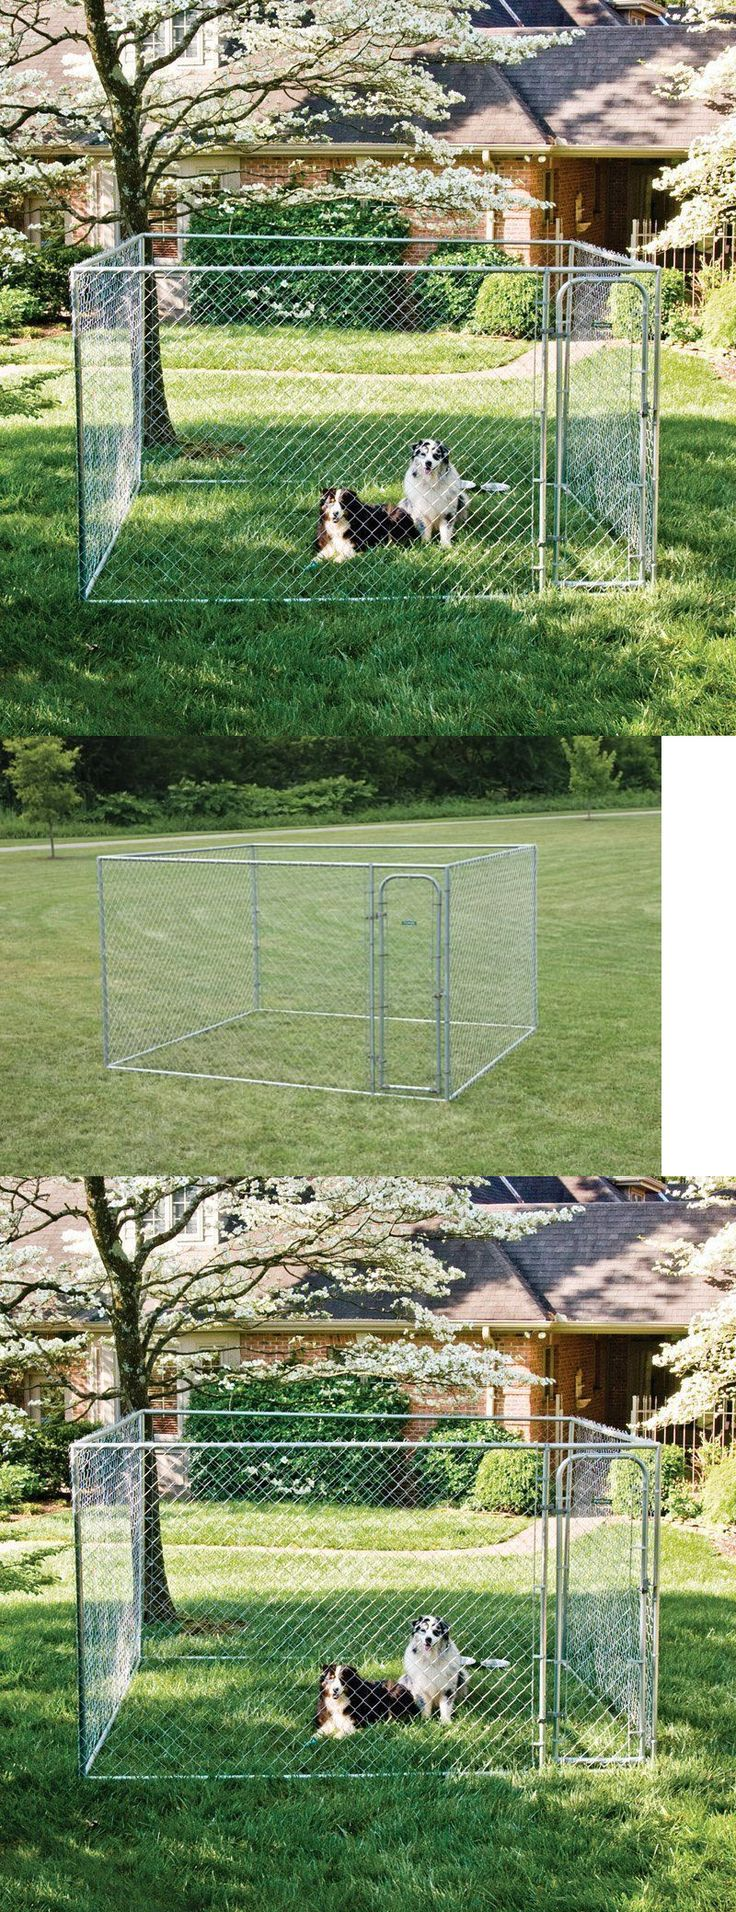 Fences and Exercise Pens 20748: Dog Kennel Pens Fences Exercise Pet Cages Pen 10X10x6 Dogs Doghouse Puppy Cage -> BUY IT NOW ONLY: $292.98 on eBay!